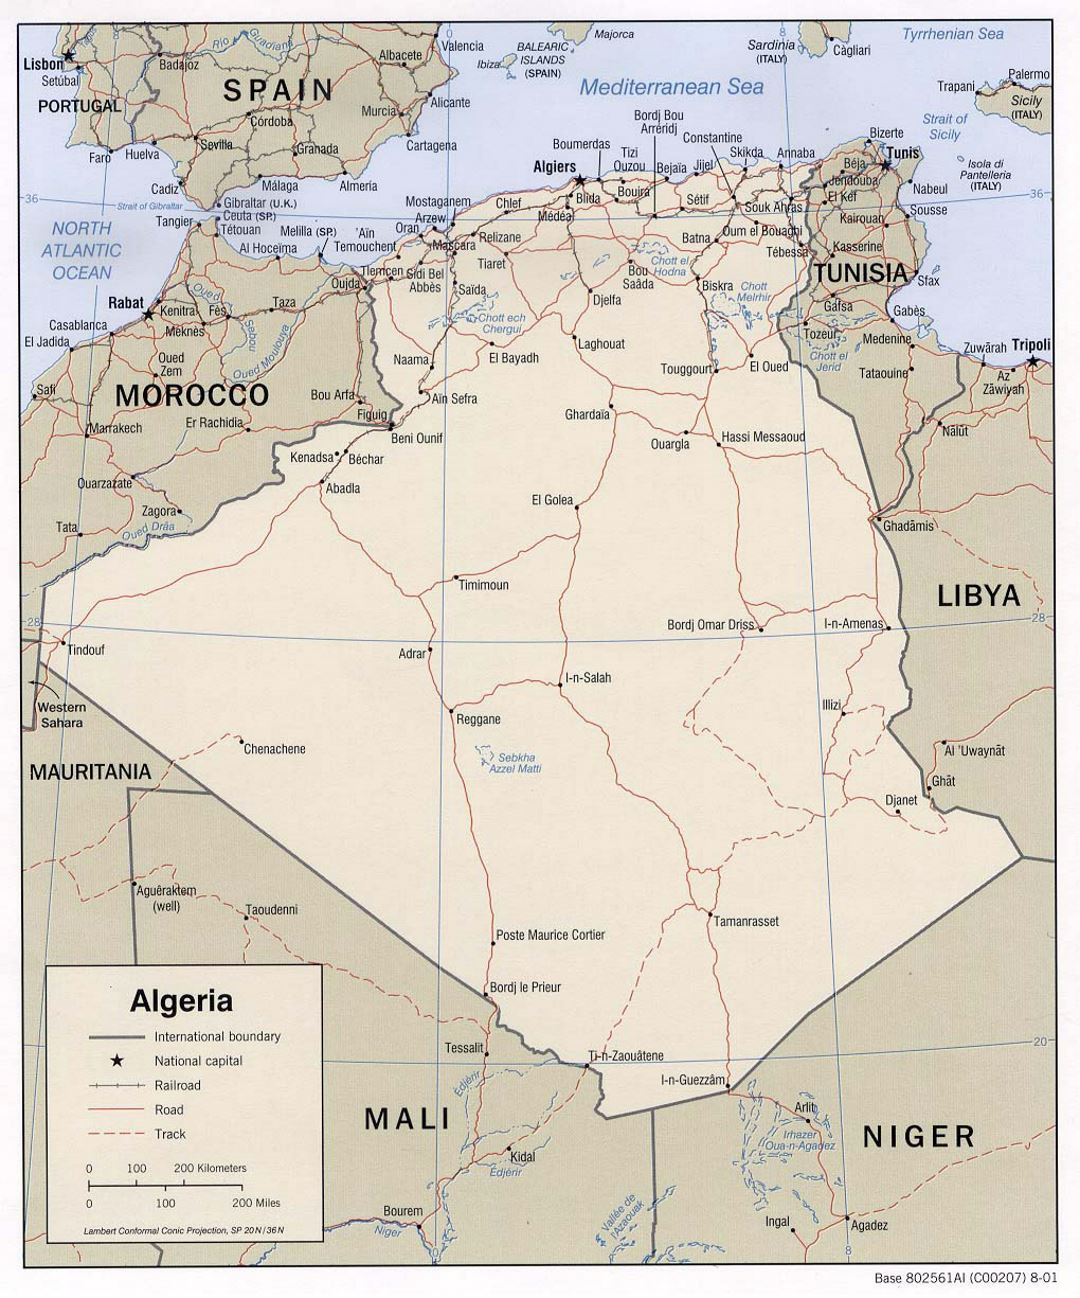 Detailed political map of Algeria with roads railroads and major